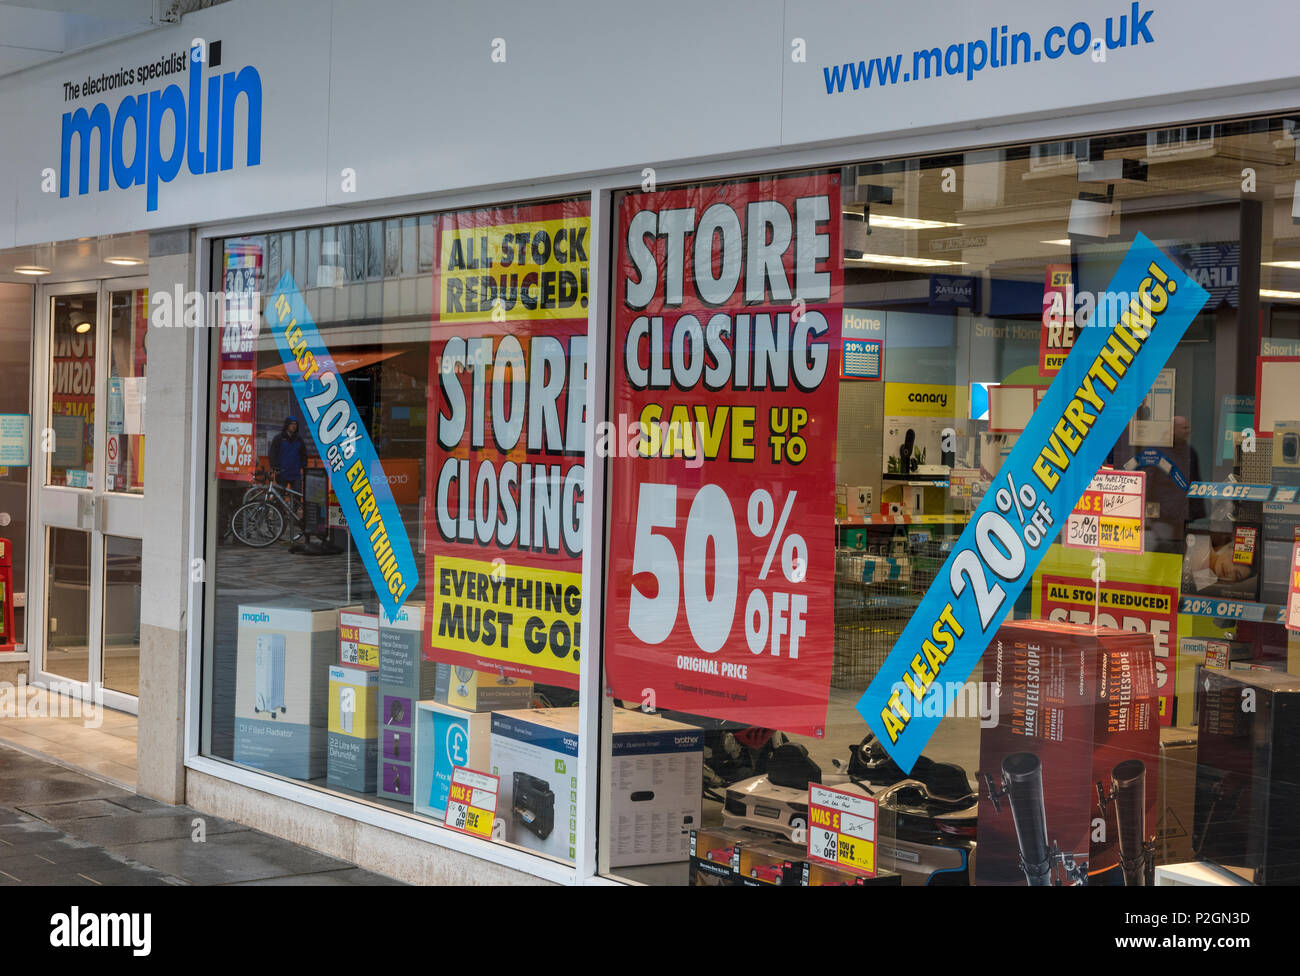 a maplin store on the high street offering items for sale closing down.  internet shopping demise of the high street for retailers. store closing down - Stock Image